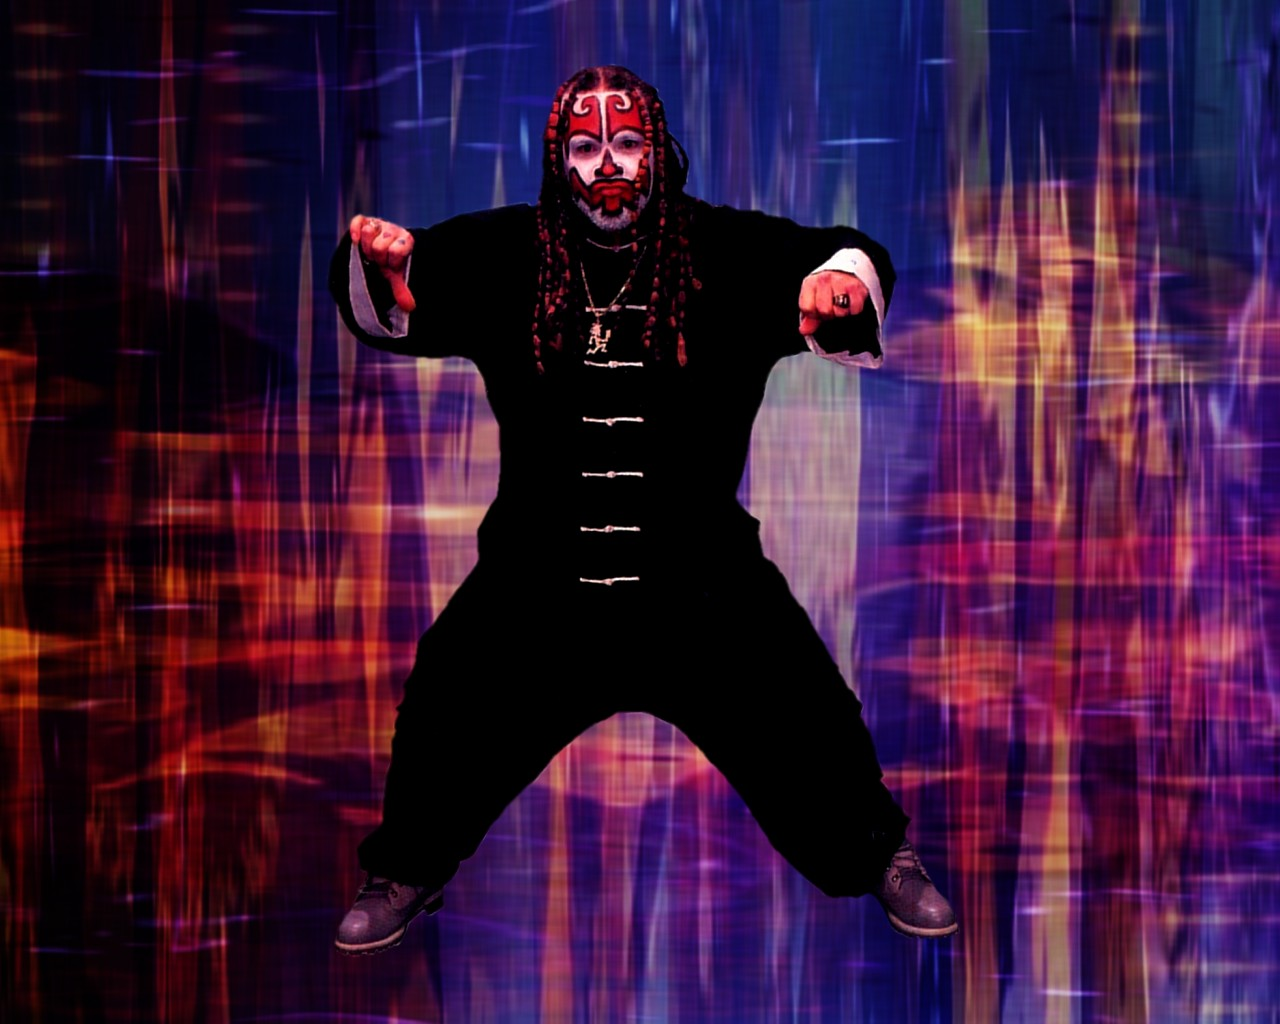 wallpaper shaggy2dope ninja 1280x1024jpg 1280x1024